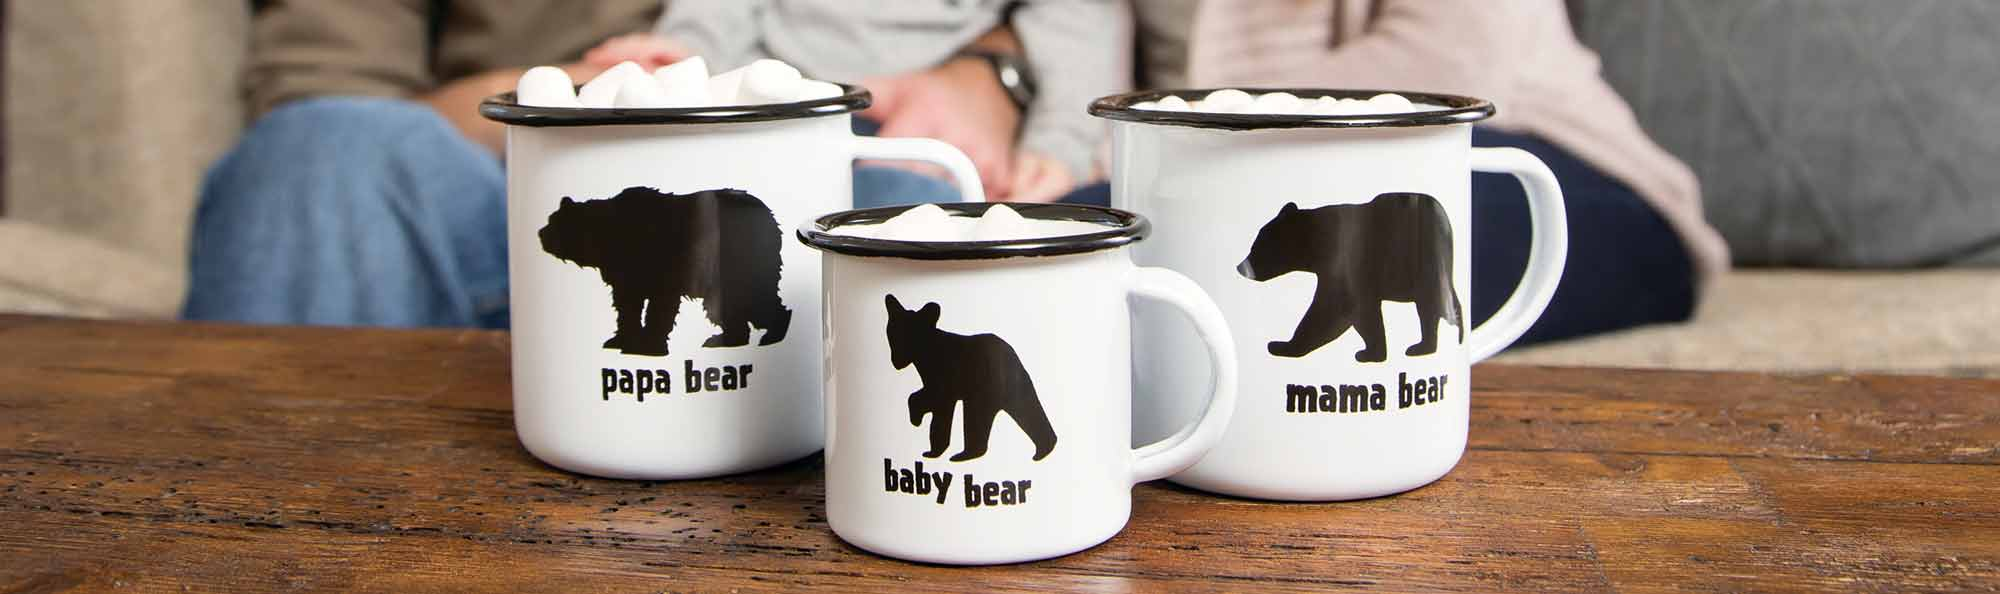 Row of mugs in front of a family that say Papa Bear, Mama Bear, Baby Bear